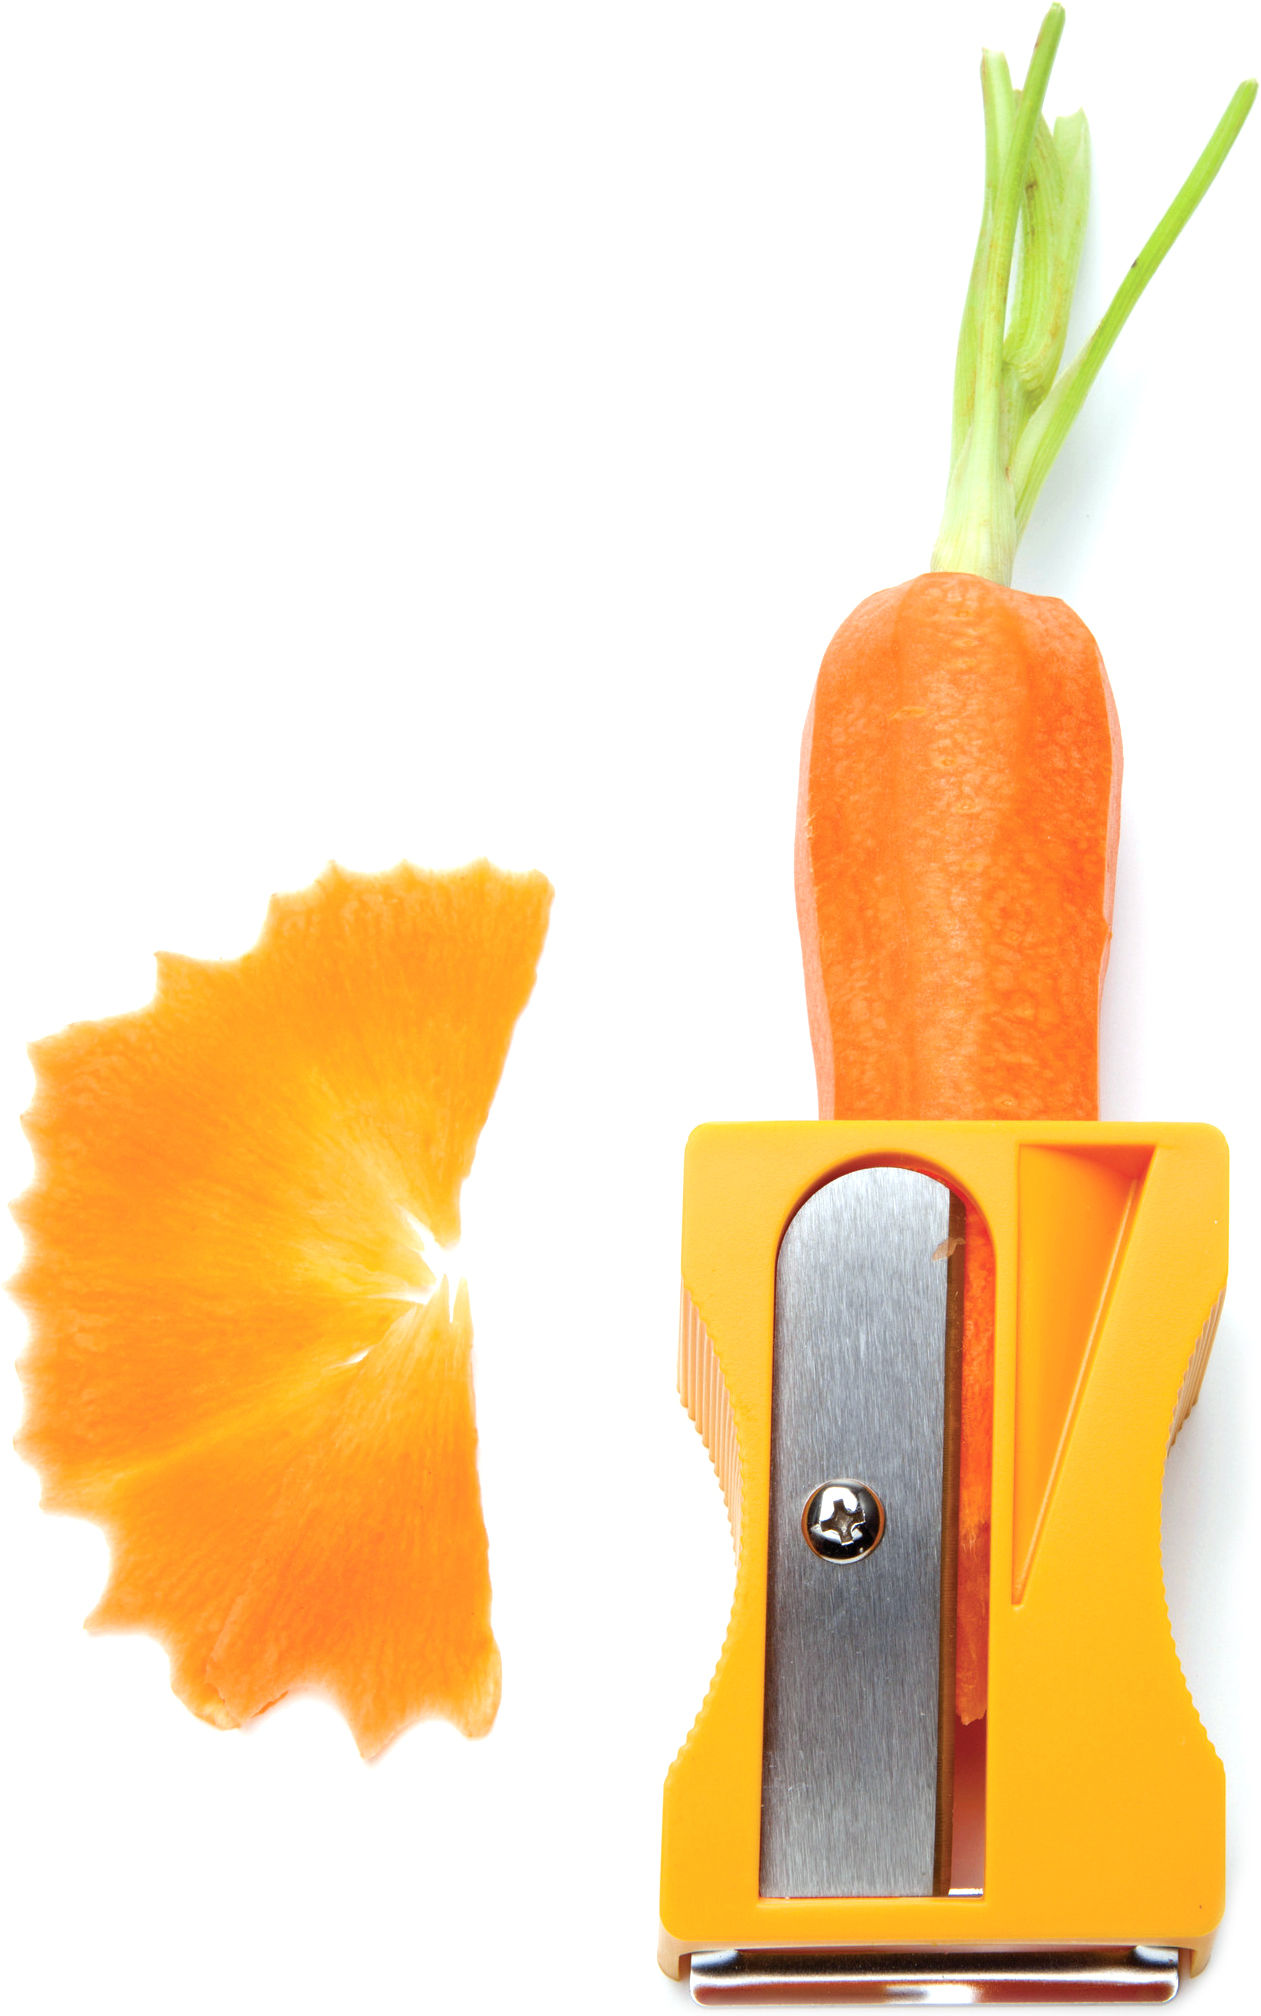 Kitchenware - Fun in the kitchen - Karoto Vegetable, potato peeler by Pa Design - Black - ABS, Stainless steel